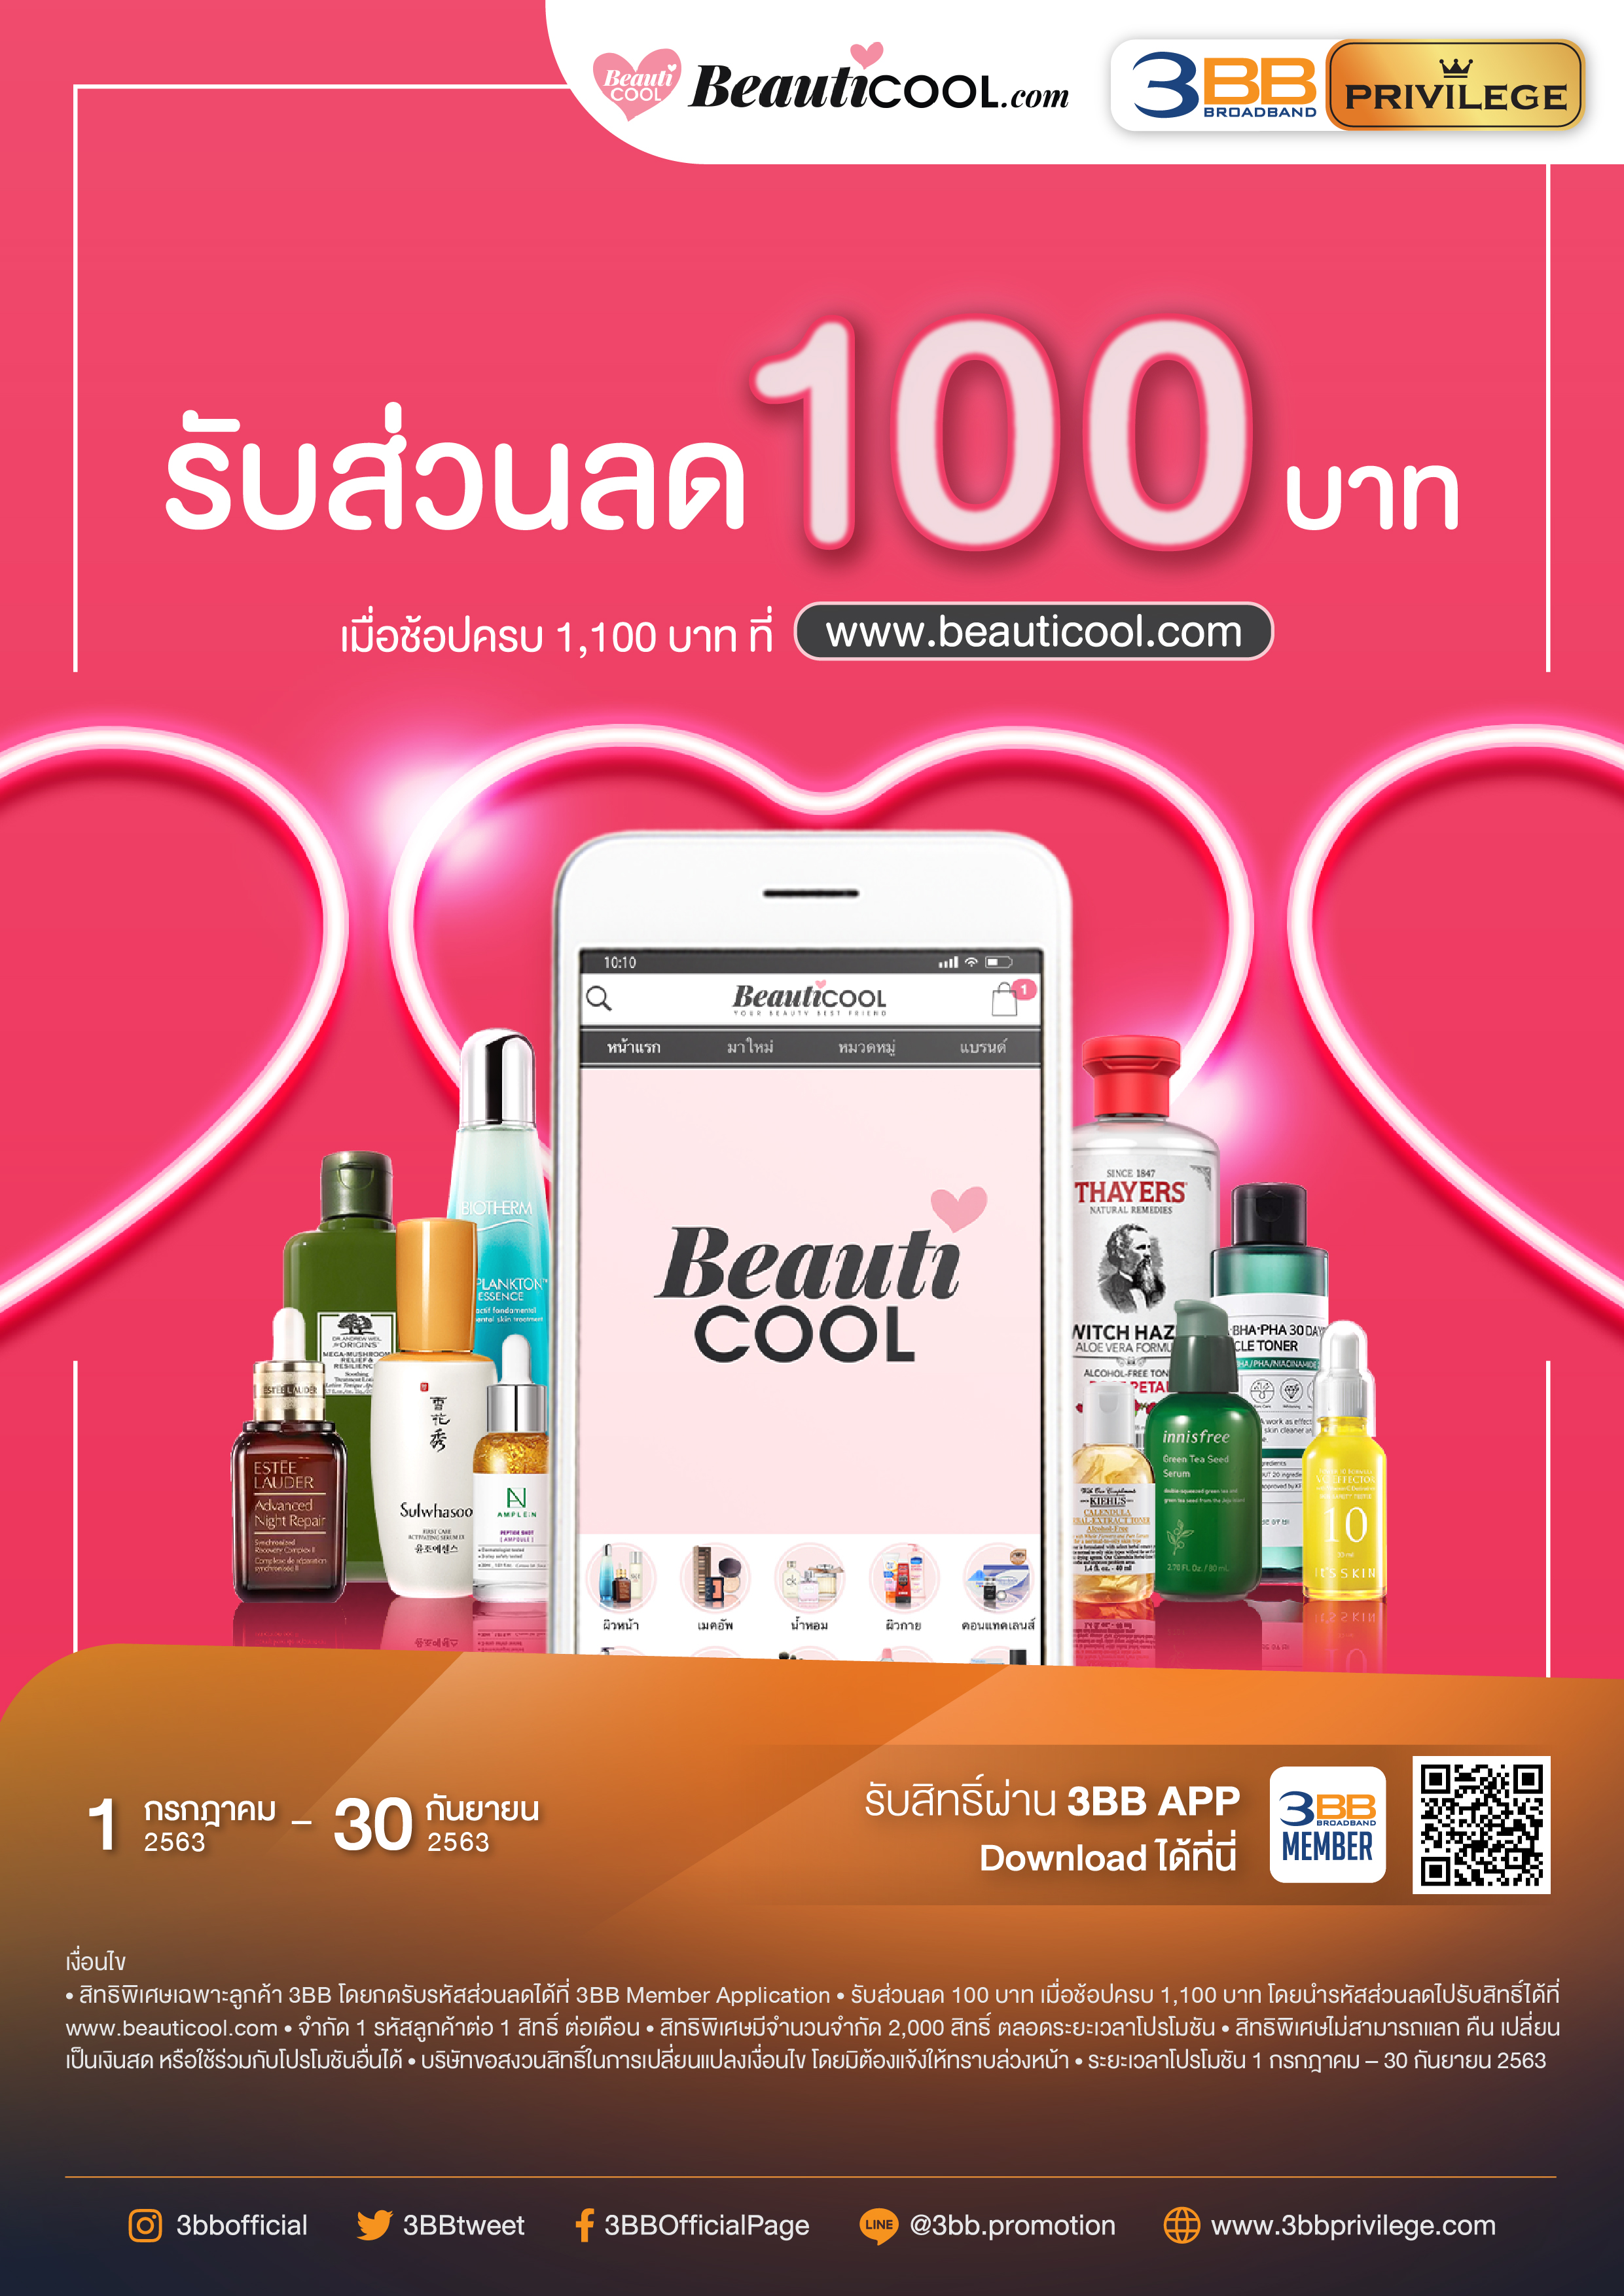 3bb, 3bb promotions, beauticool, beauticool promotions